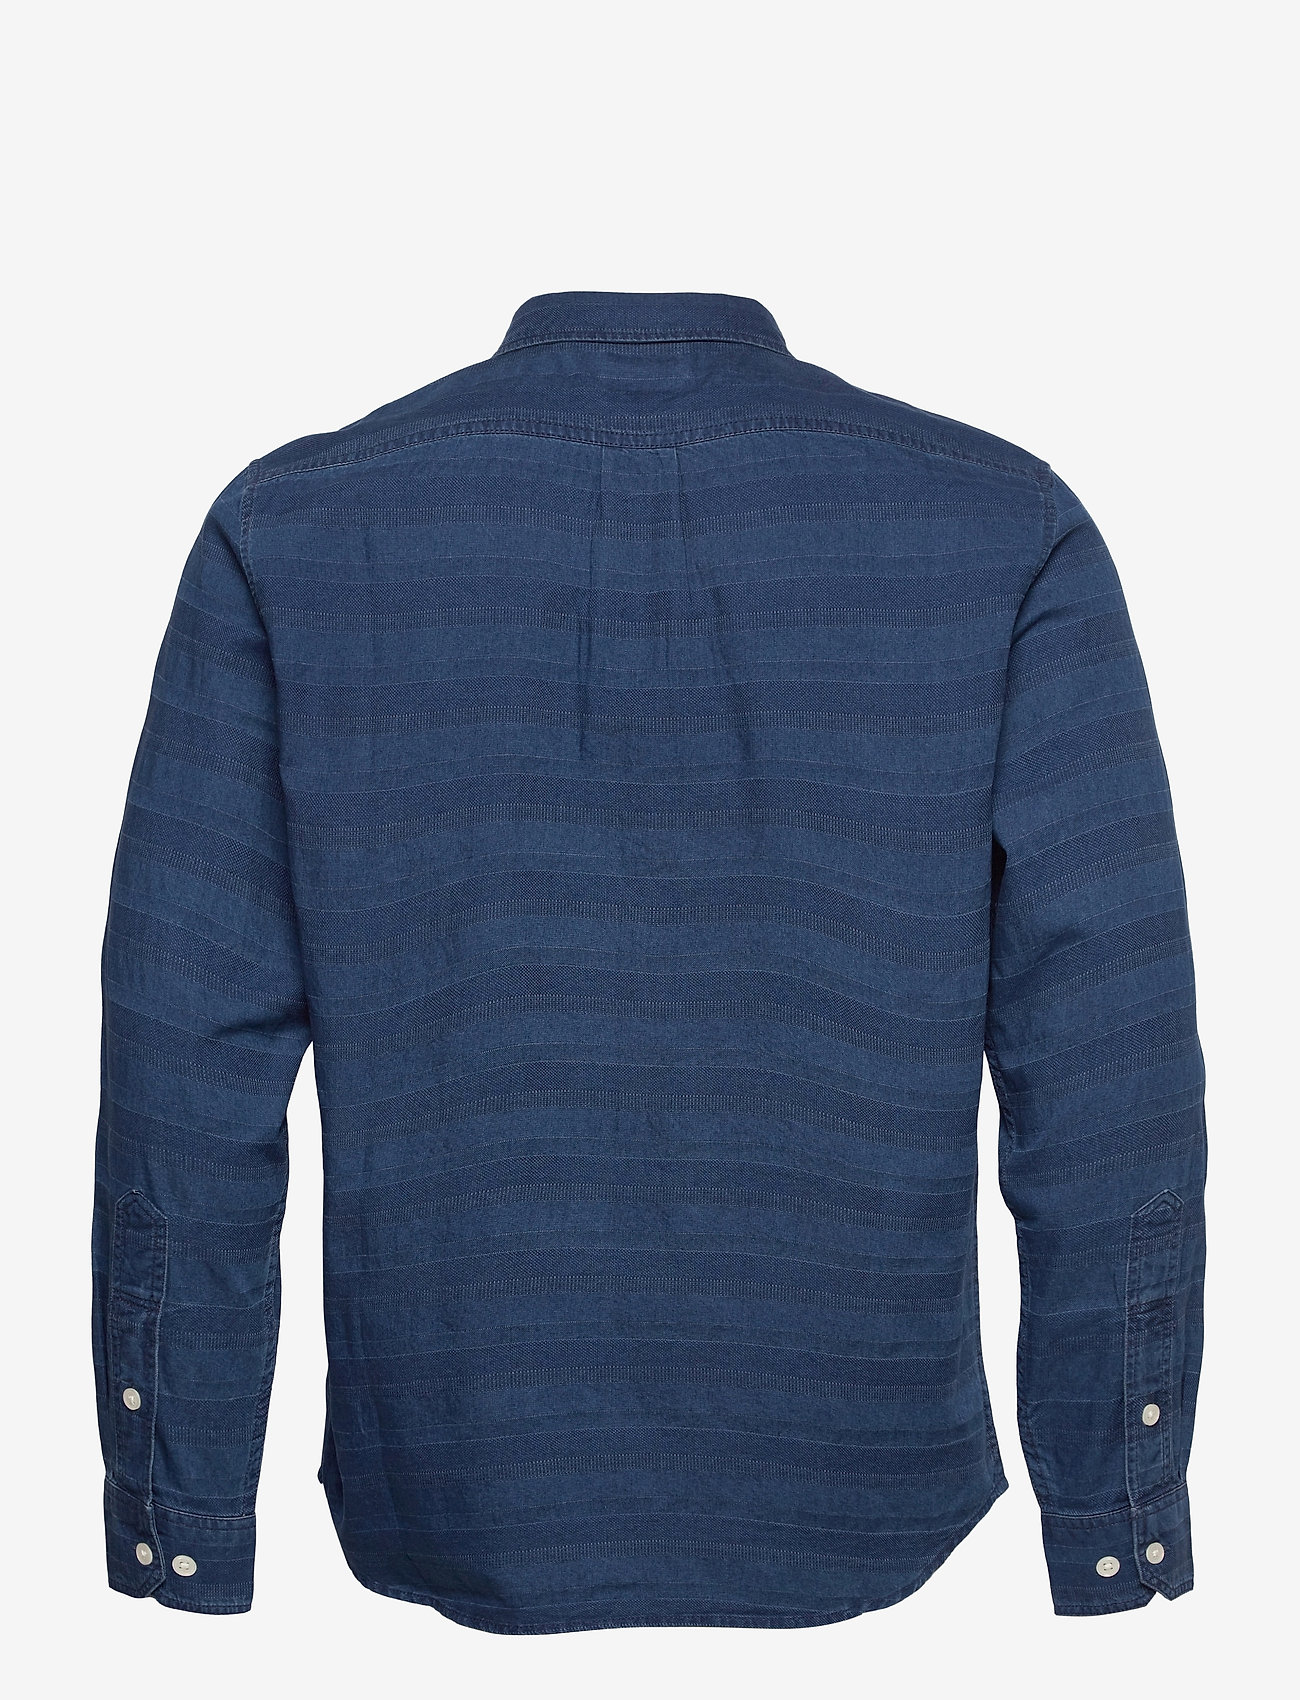 Lee Jeans - LEE ONE POCKET SHIRT - casual shirts - washed blue - 1